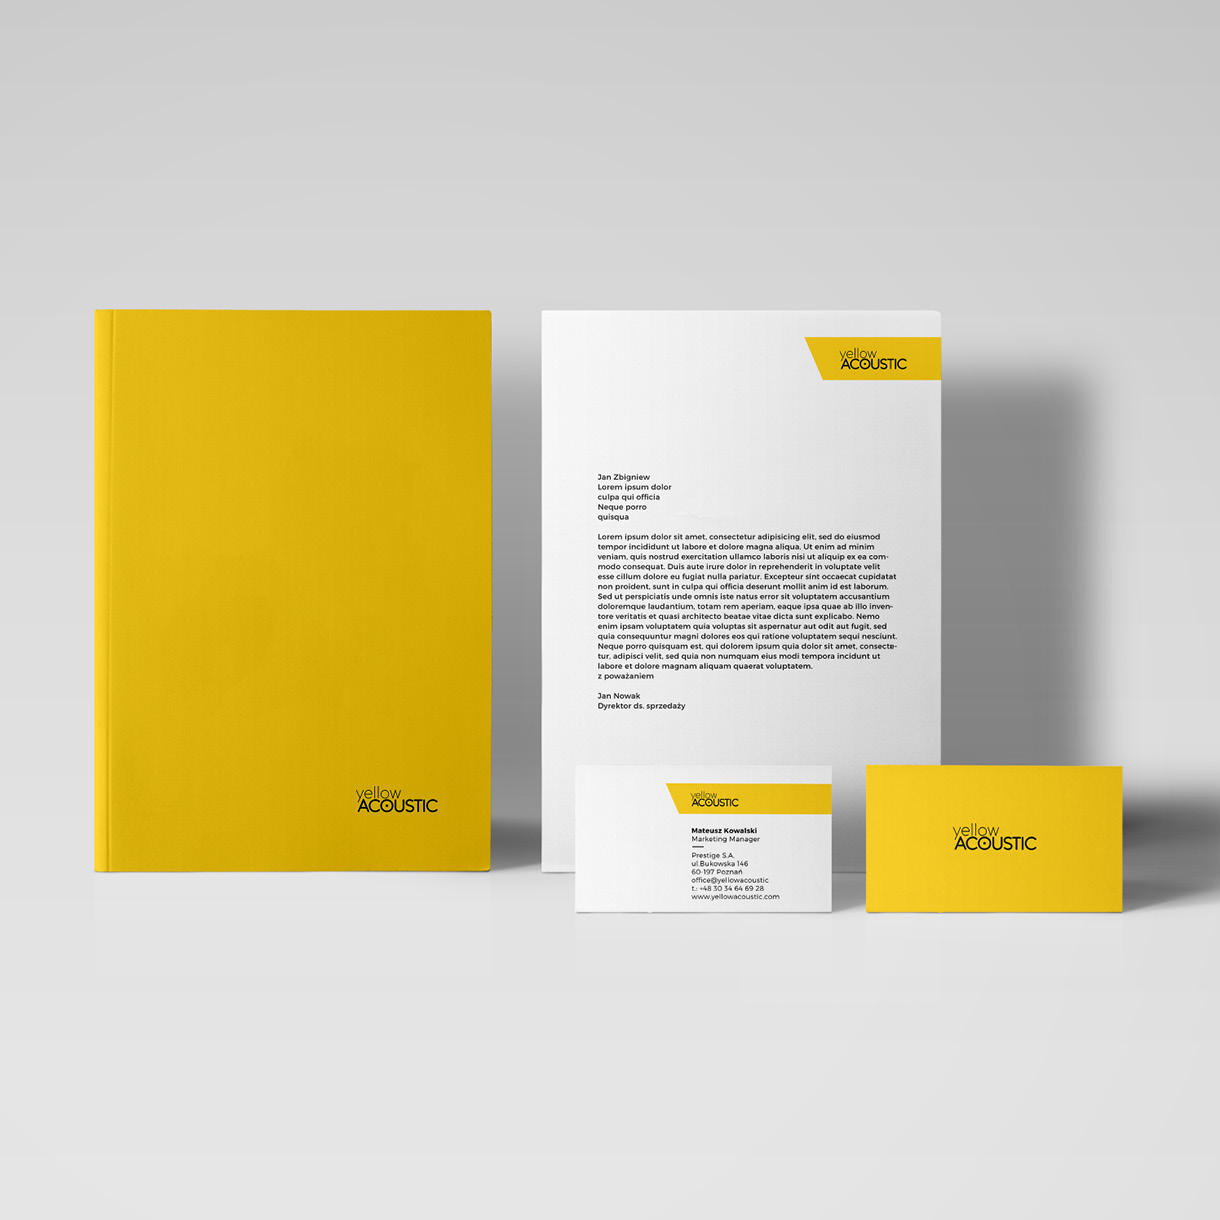 Yellow Acoustic - Visual identity